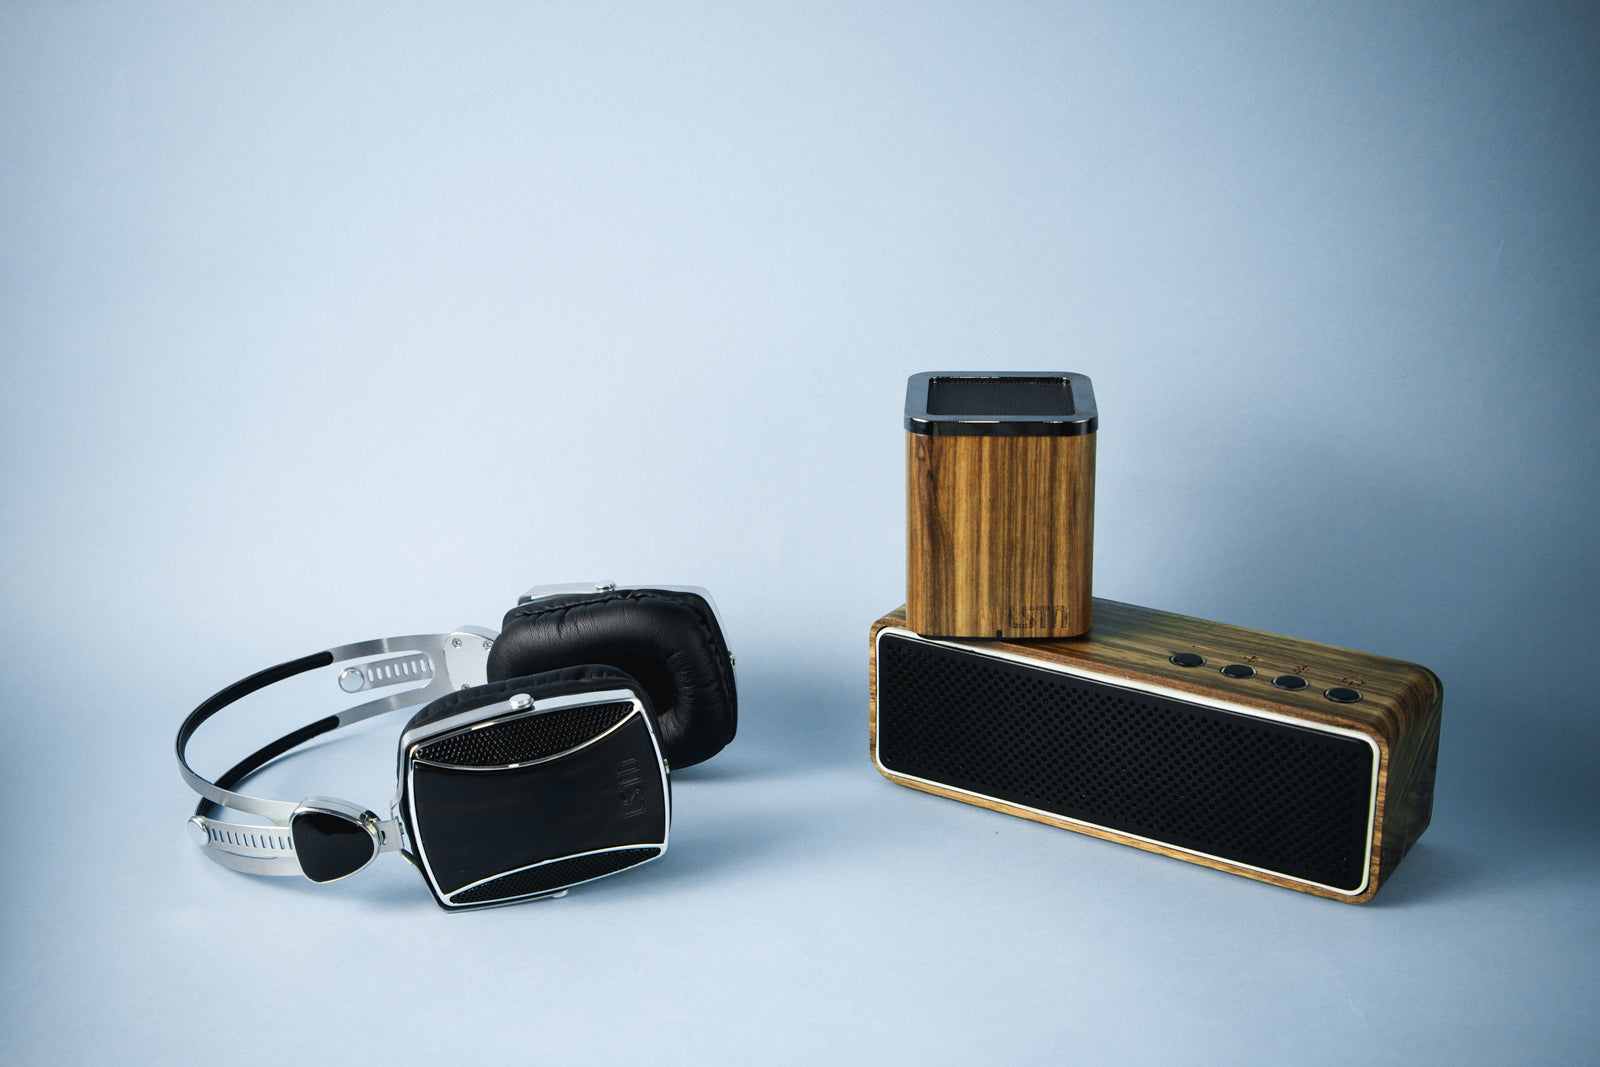 lstn sound wood bluetooth speakers and encore headphones for corporate gifts and holiday gifts